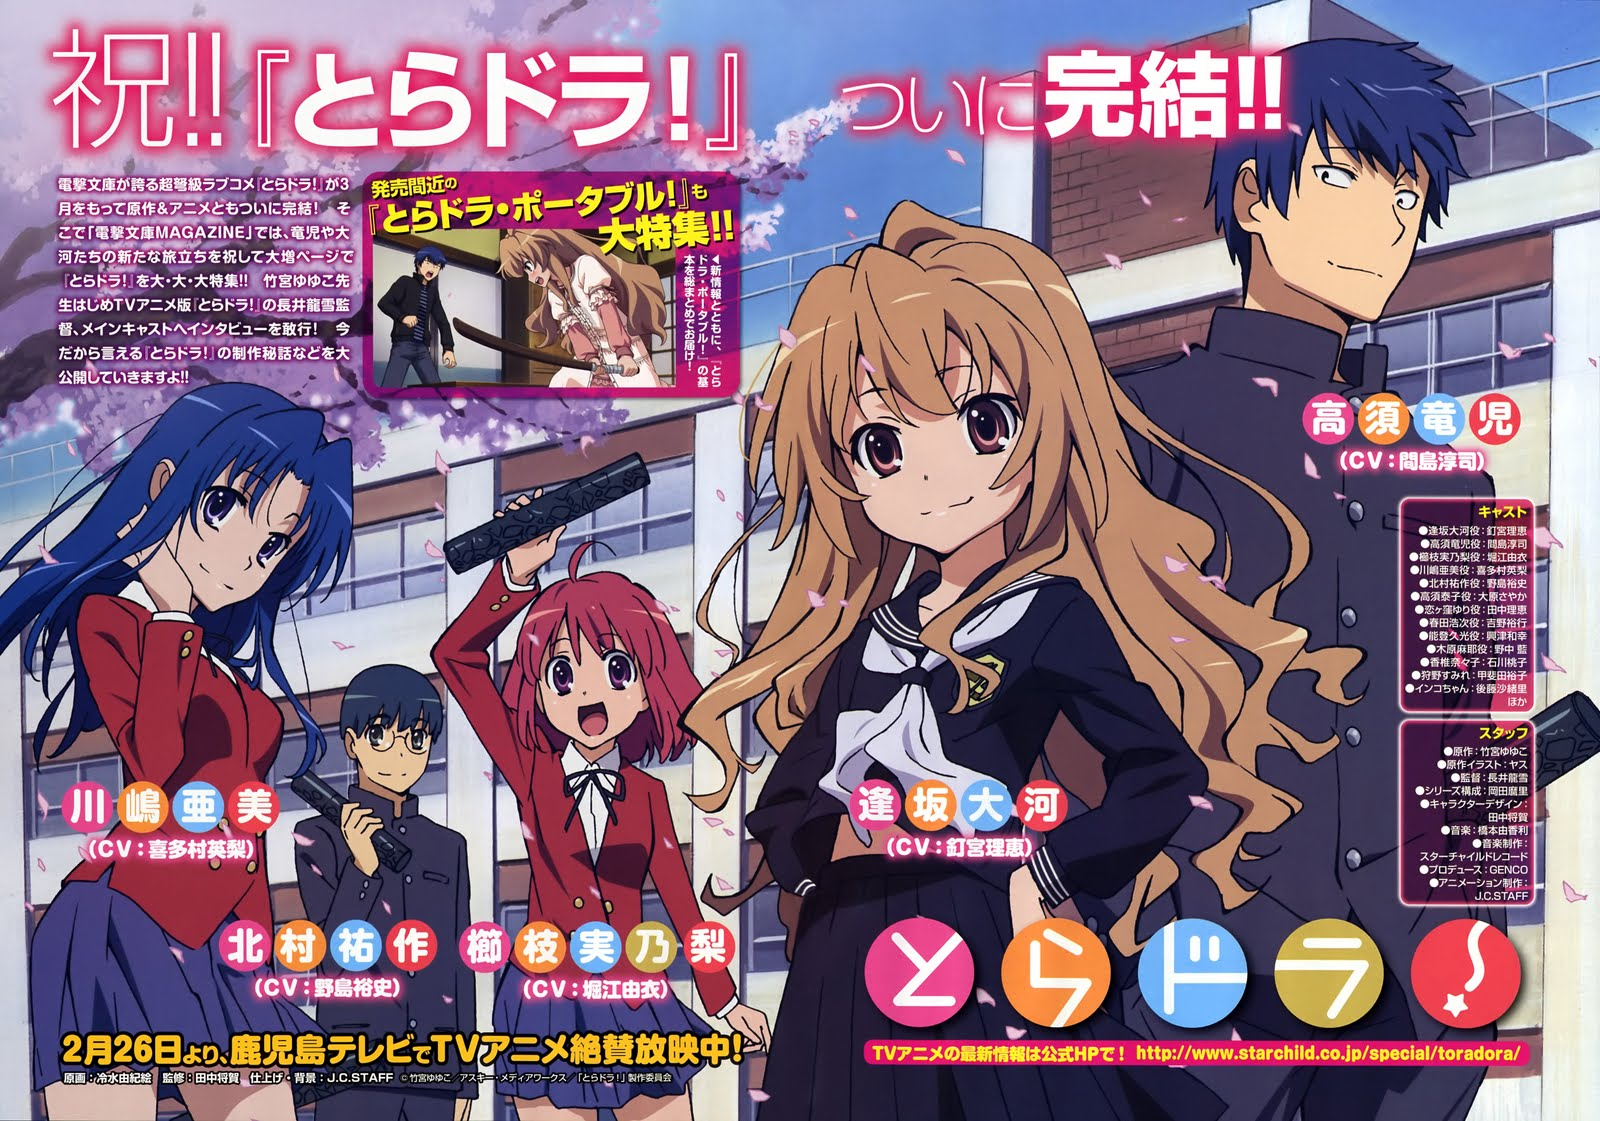 http://images6.fanpop.com/image/photos/34600000/OVA-announcement-for-Toradora-toradora-34672803-1600-1121.jpg